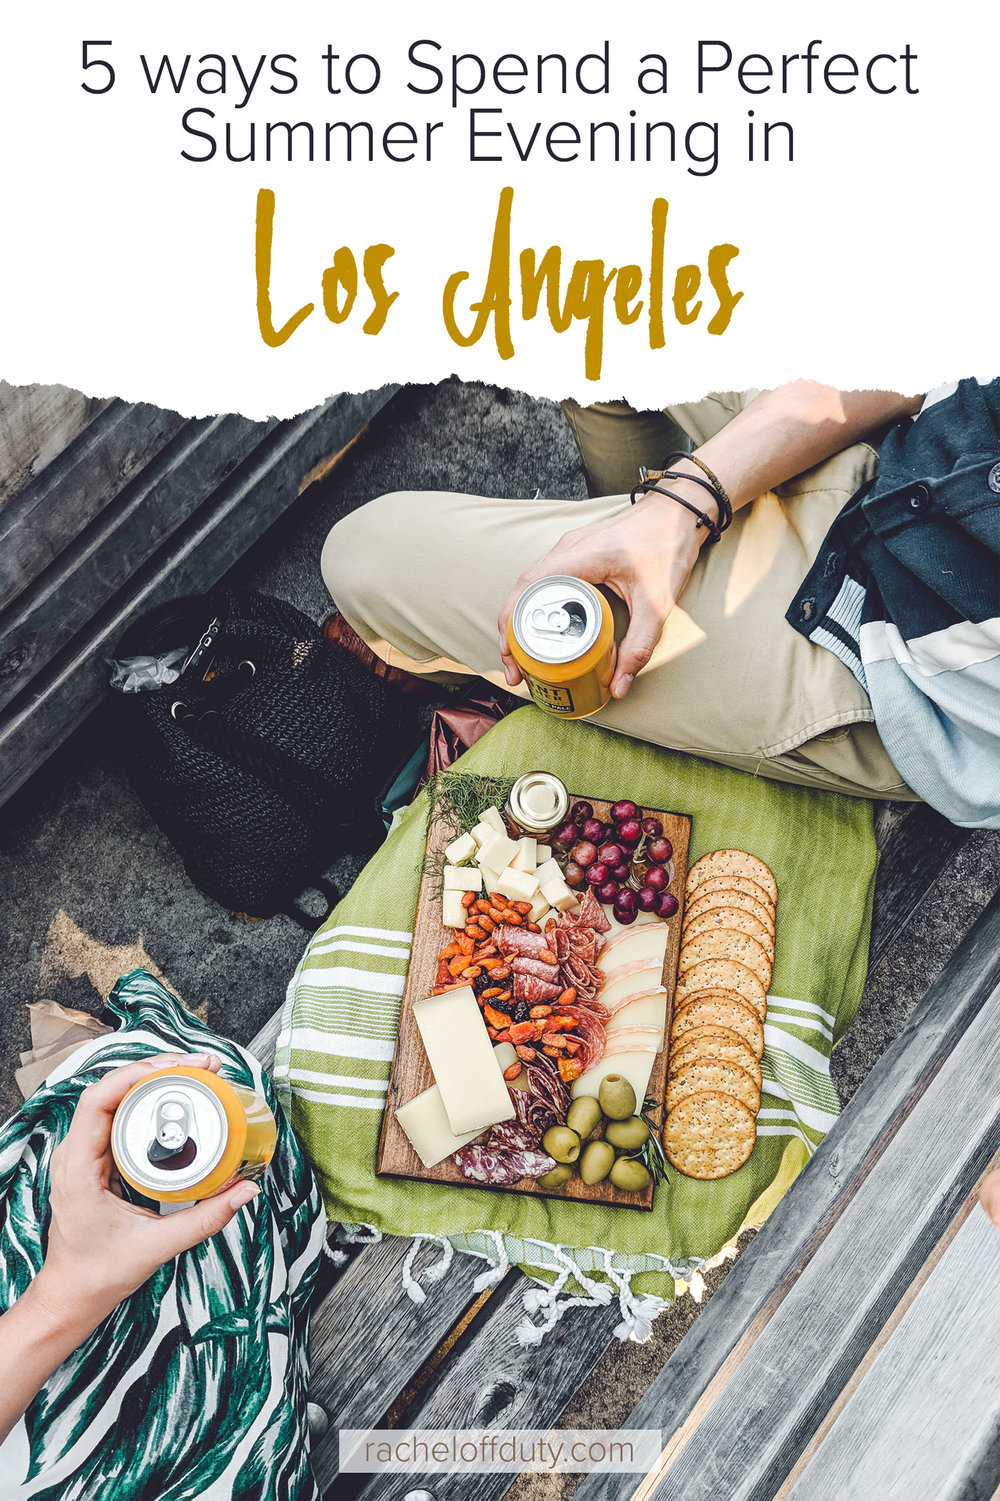 Rachel Off Duty: How to Spend the Perfect Summer Night in Los Angeles